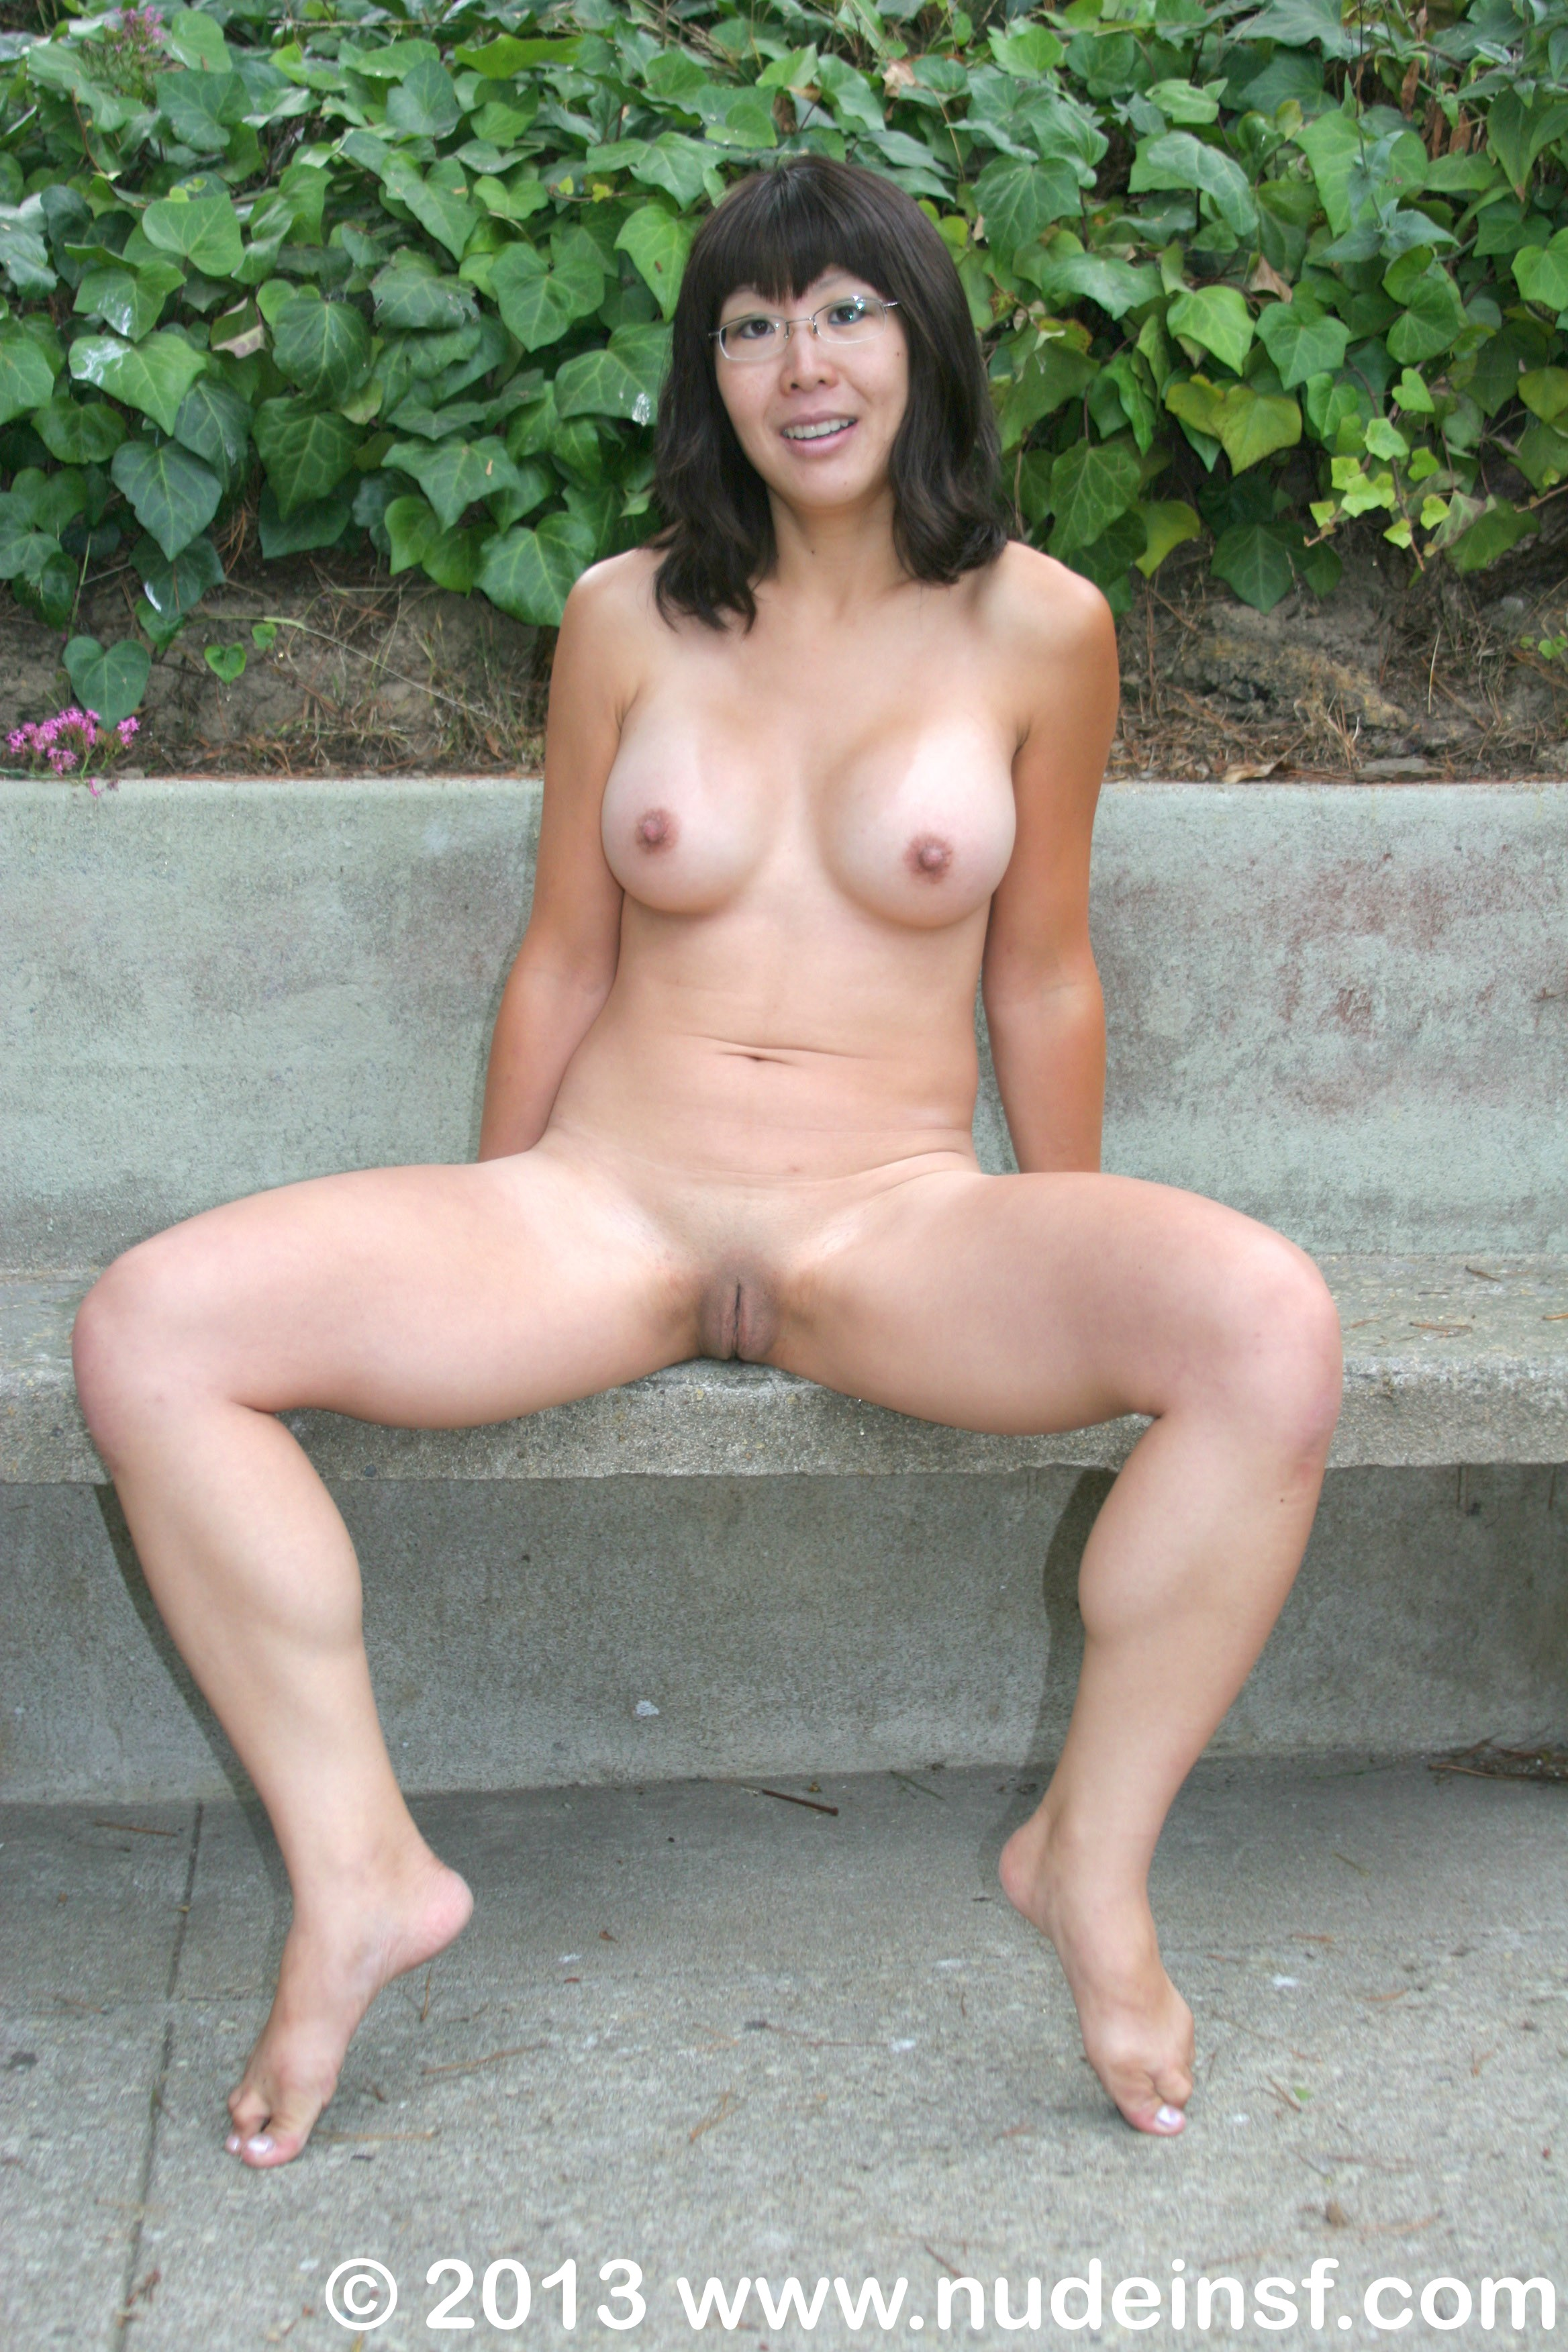 nudist old people-adult gallery